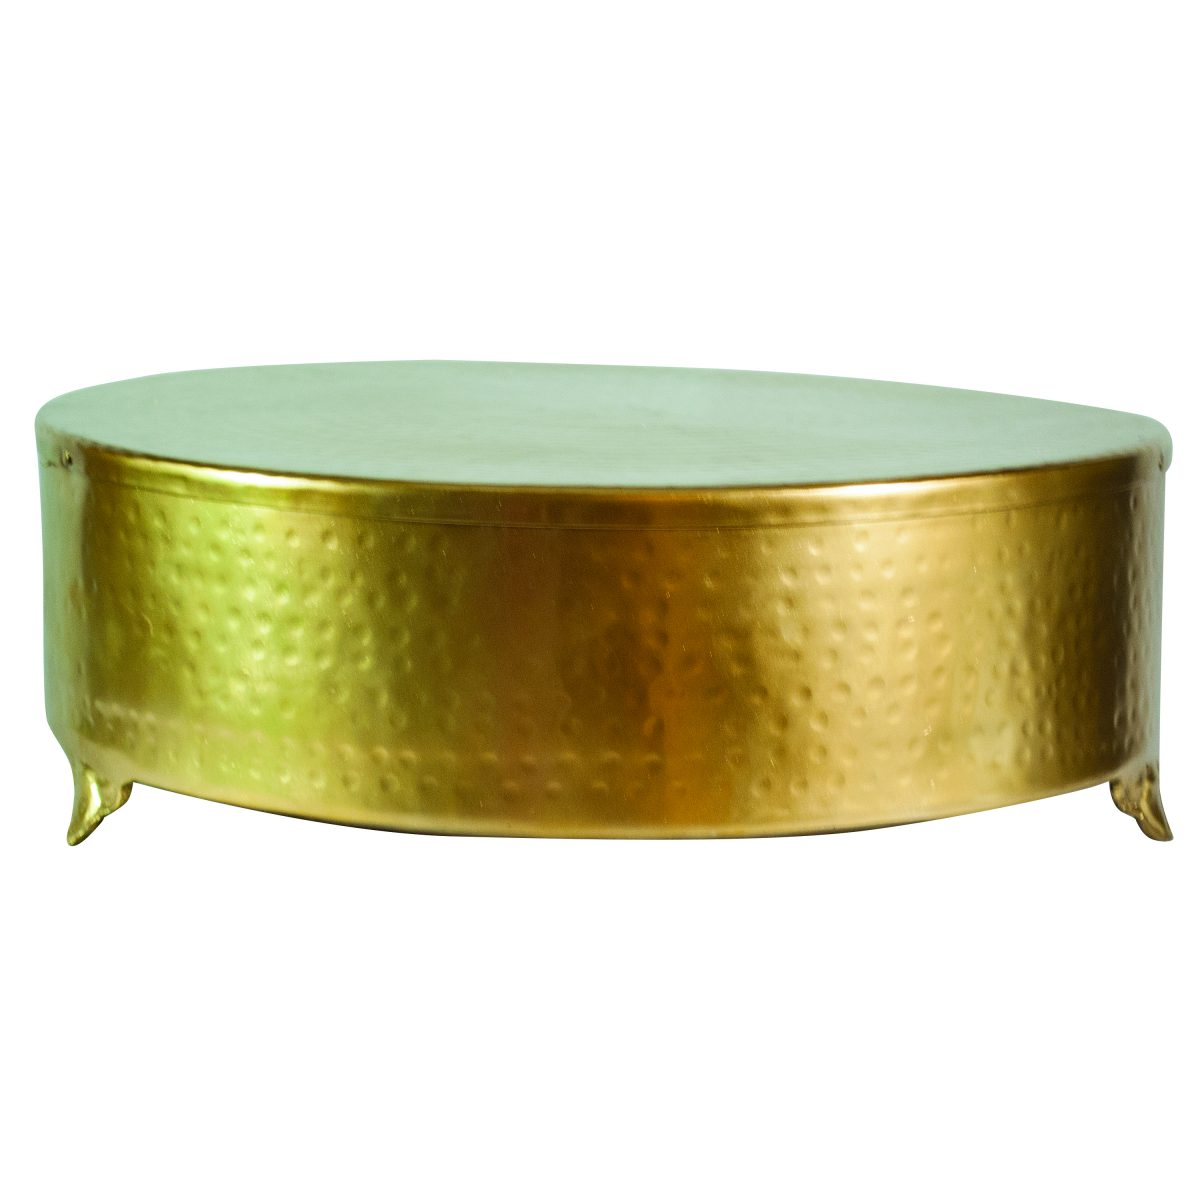 Round Gold Cake Stand - Celebrations! Party Rentals